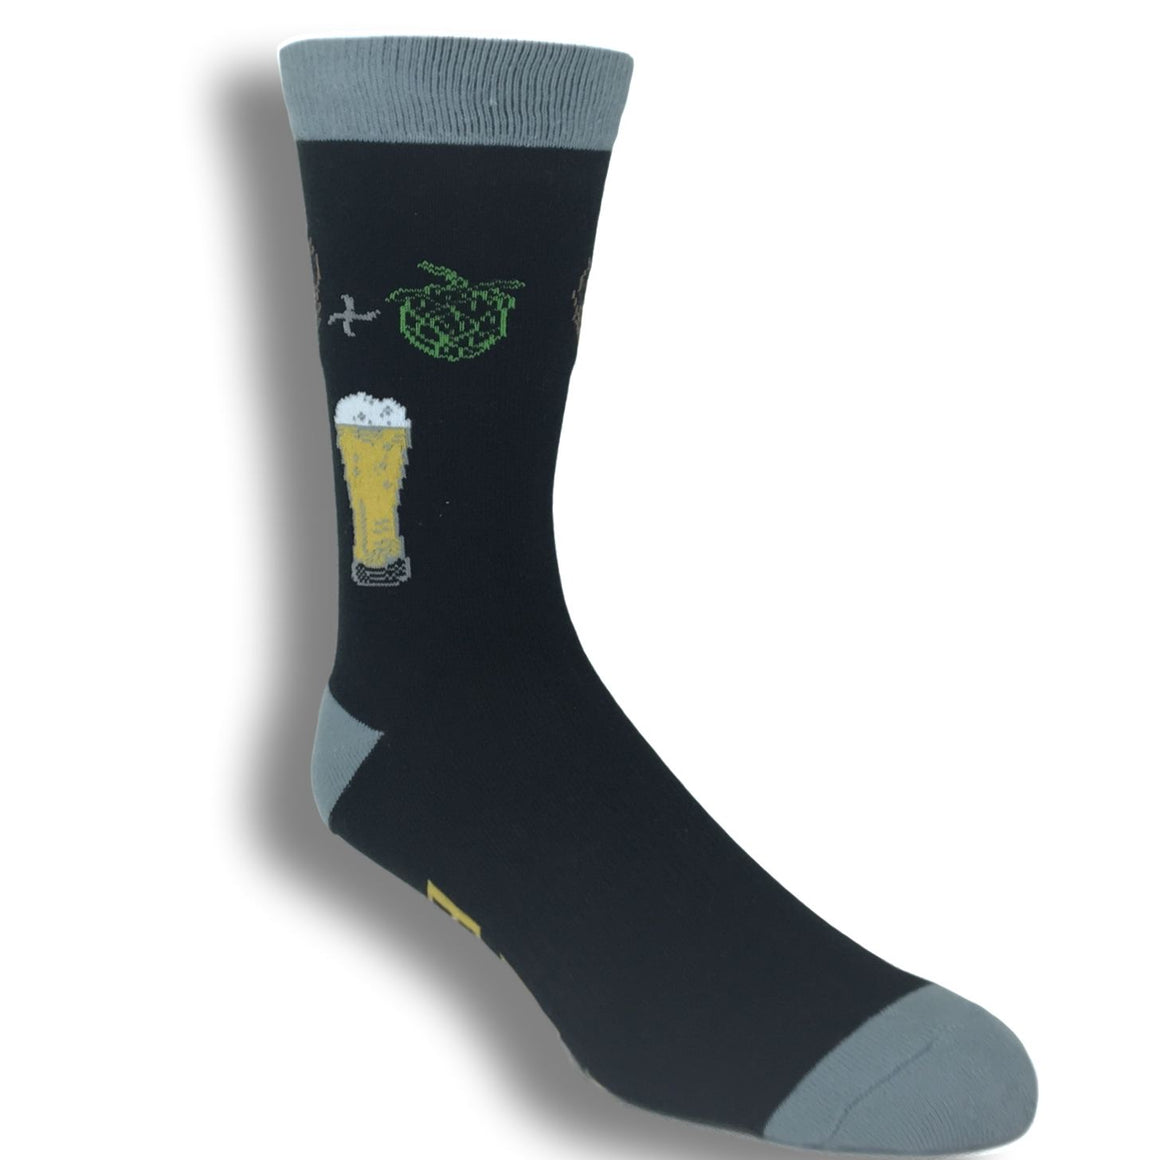 Hoppy Beer Socks by K.Bell - The Sock Spot